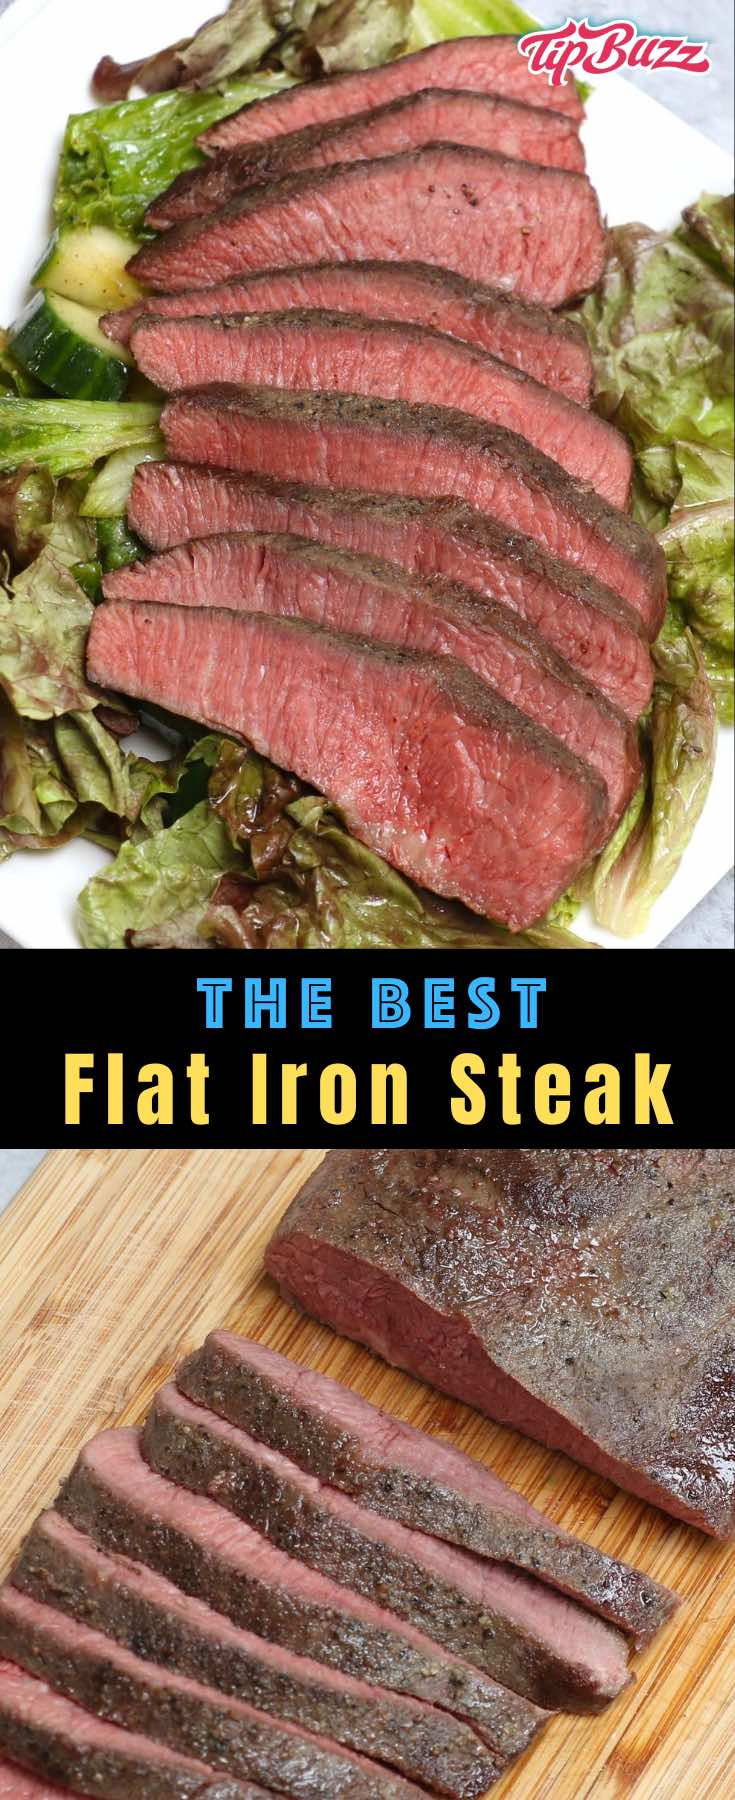 This flat iron steak is pan-seared to perfection with garlic and herbs to make a mouthwatering steak dinner that's affordable and easy to make in just 15 minutes! #flatironsteak #tipbuzz